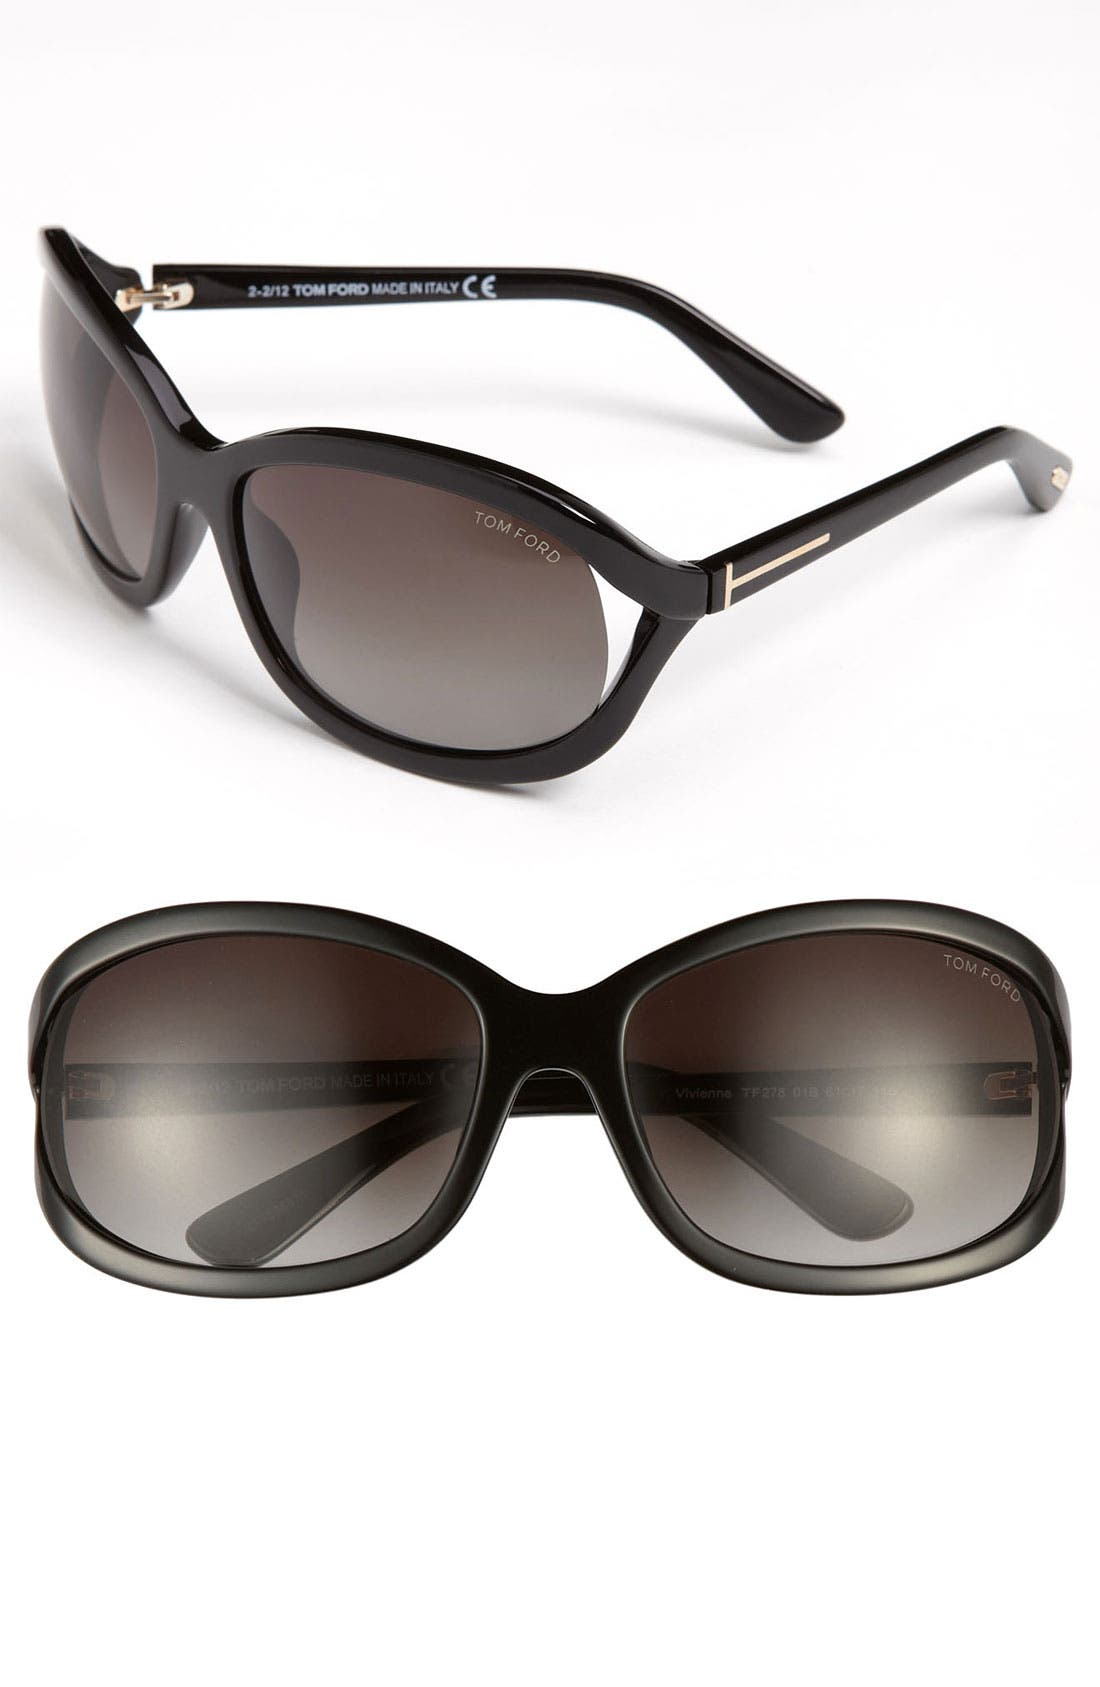 Alternate Image 1 Selected - Tom Ford 'Vivienne' 61mm Sunglasses